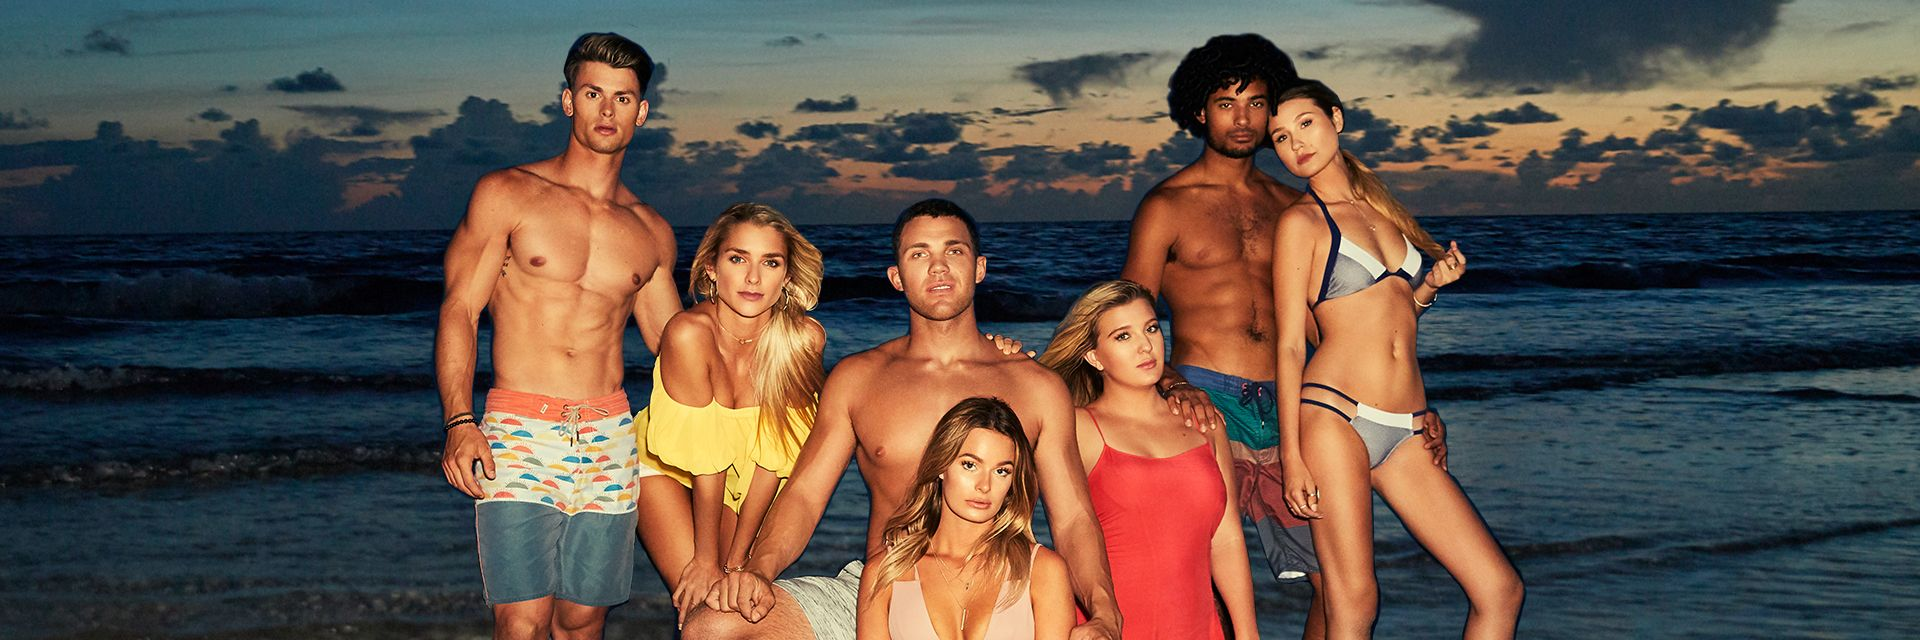 Reality dating shows on mtv episode